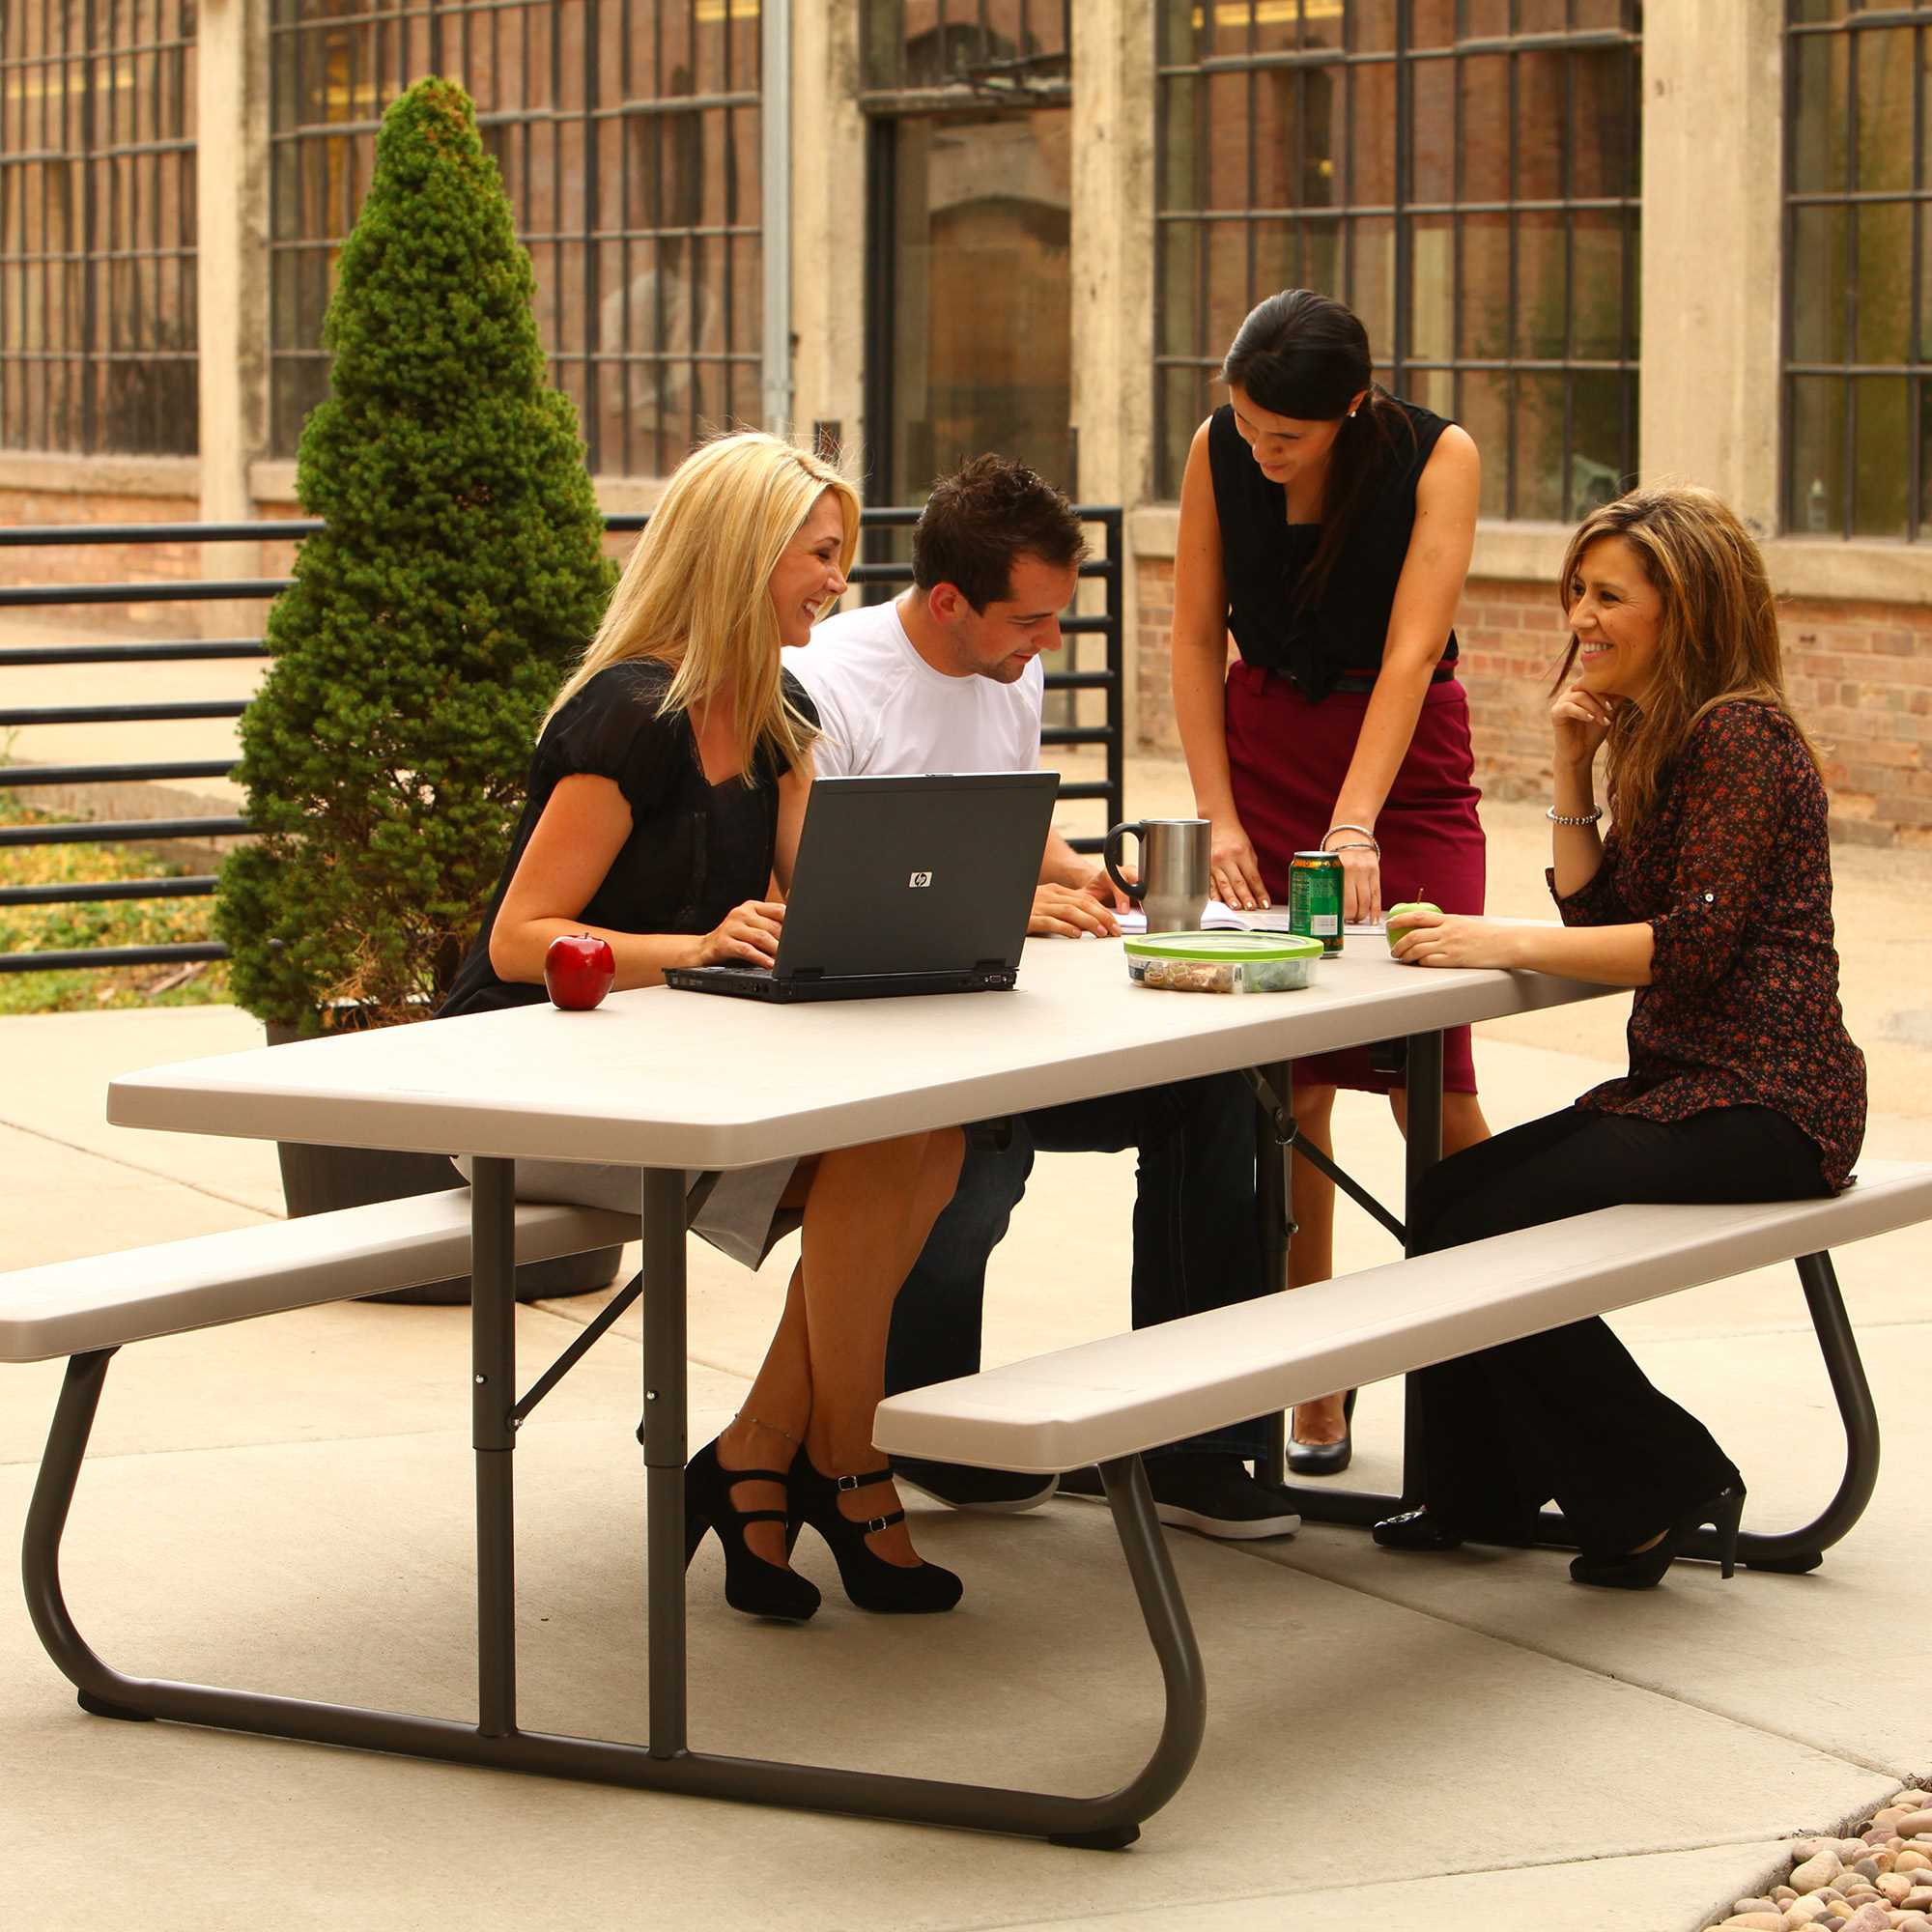 Lifetime 8ft Classic Folding Picnic Table - Putty (80123) Perfect for your meetings or gatherings.